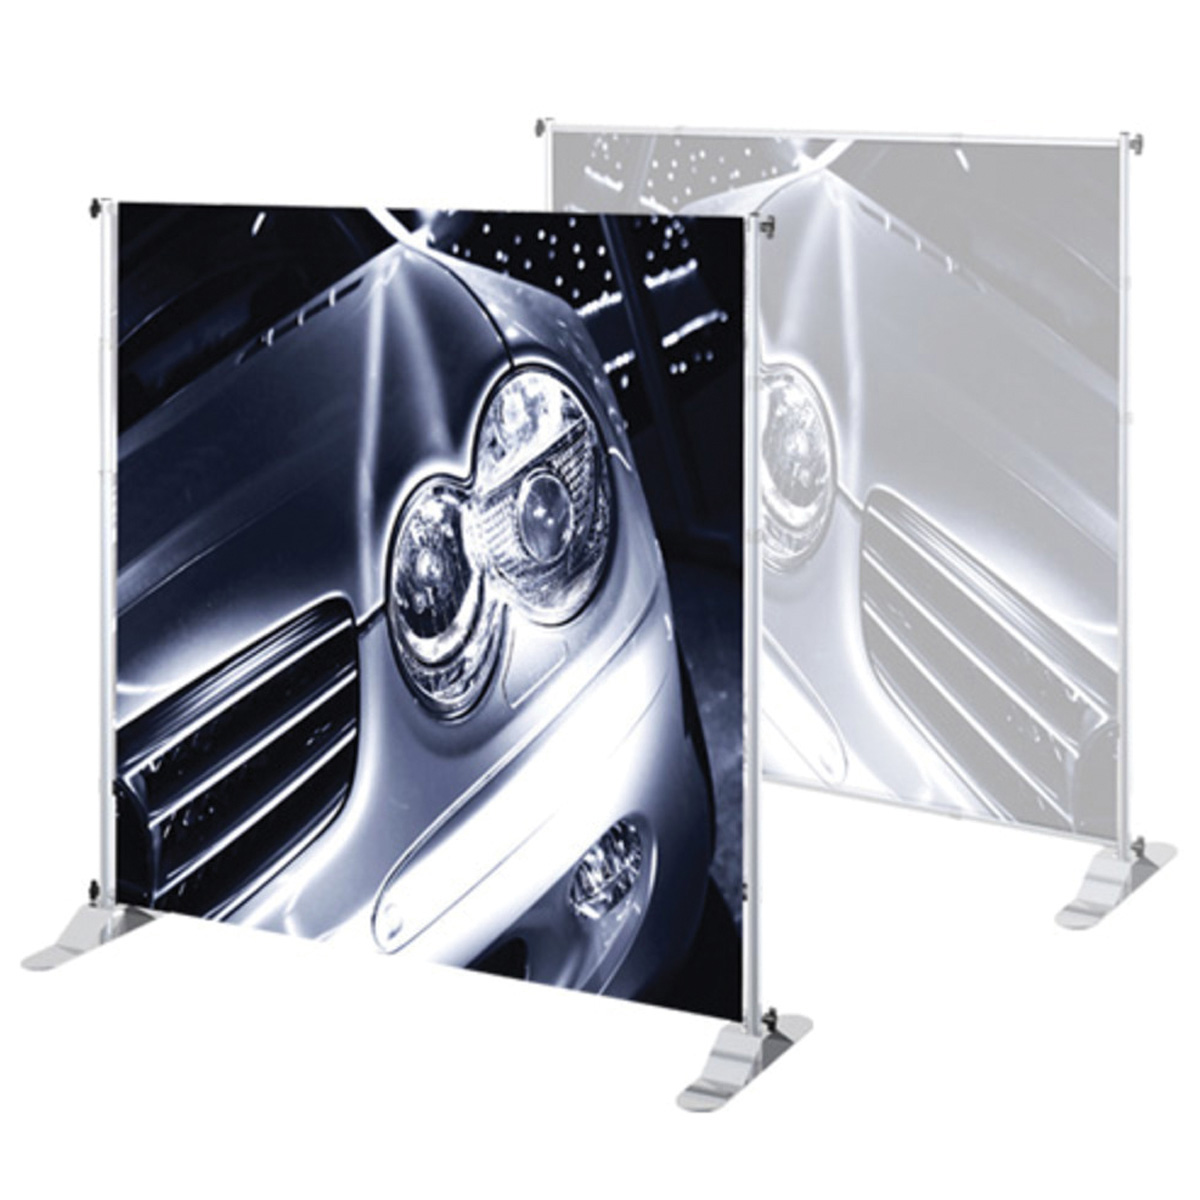 Stand /& Graphic Personalized Jumbo Banner Black Large Tube 5x5 Graphic Package